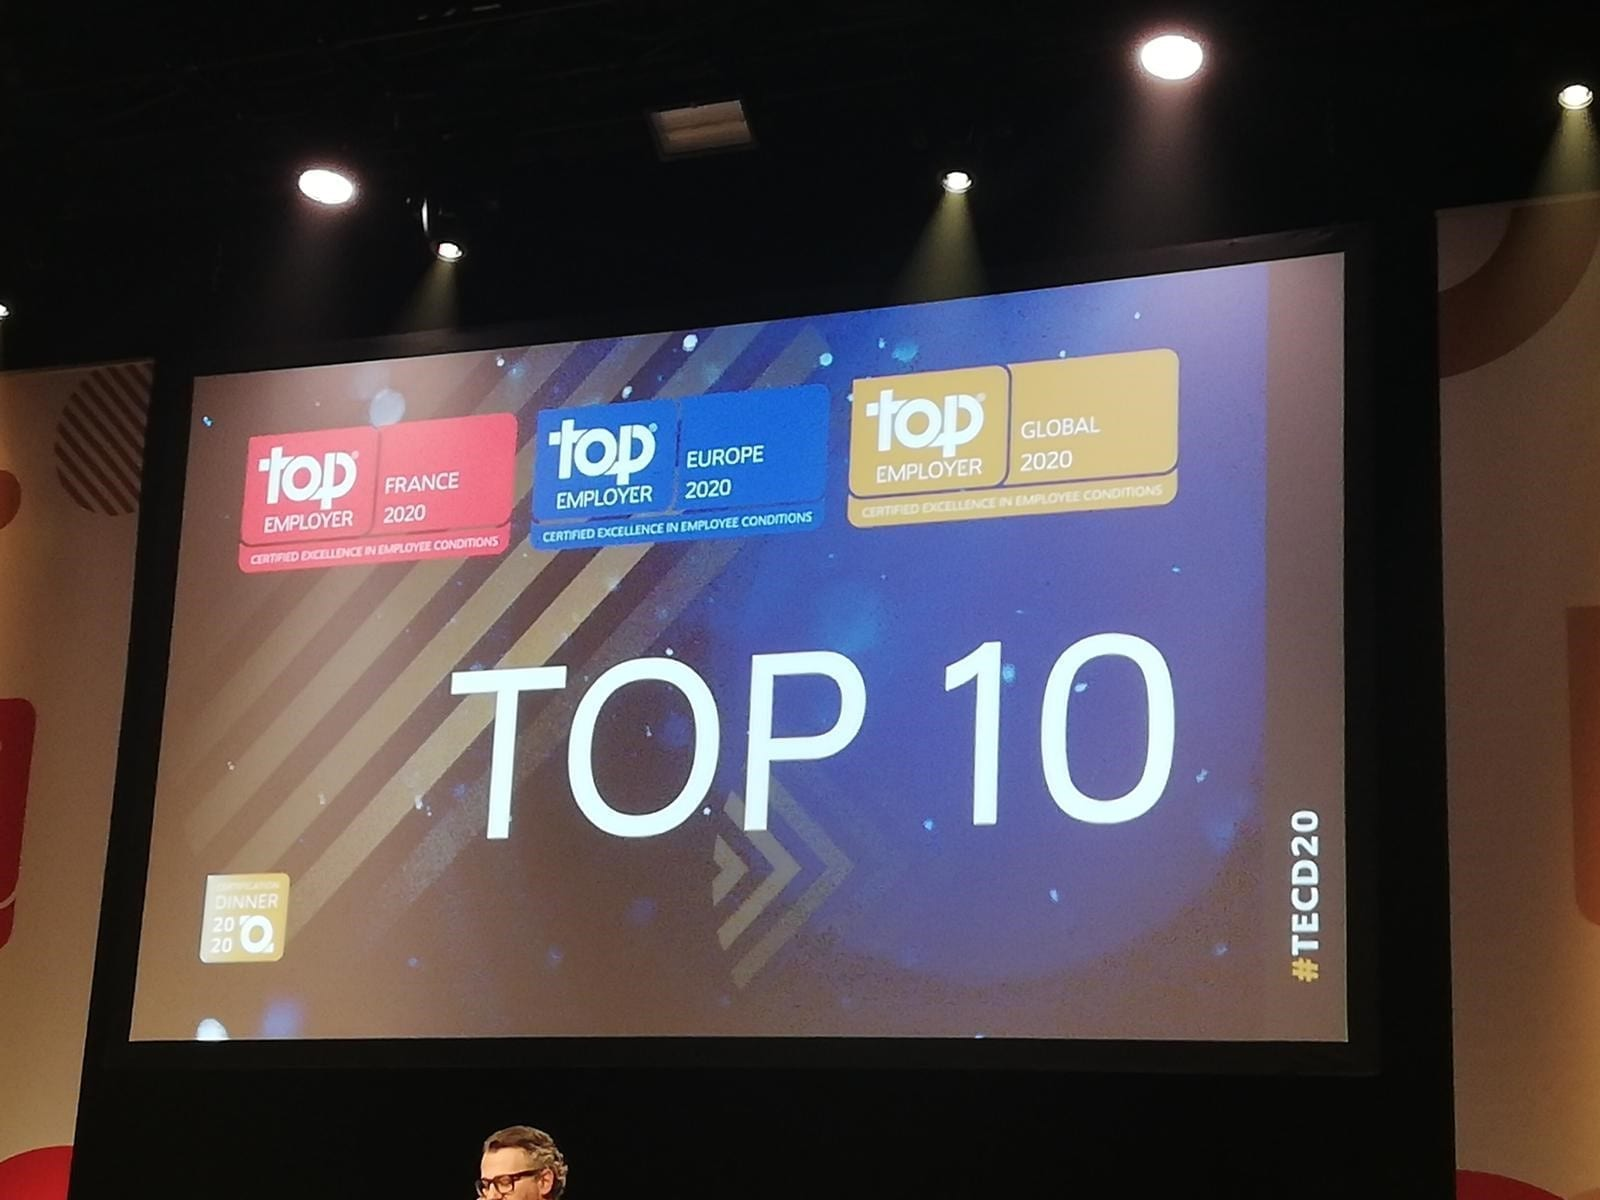 Top 10 - Top Employer France 2020